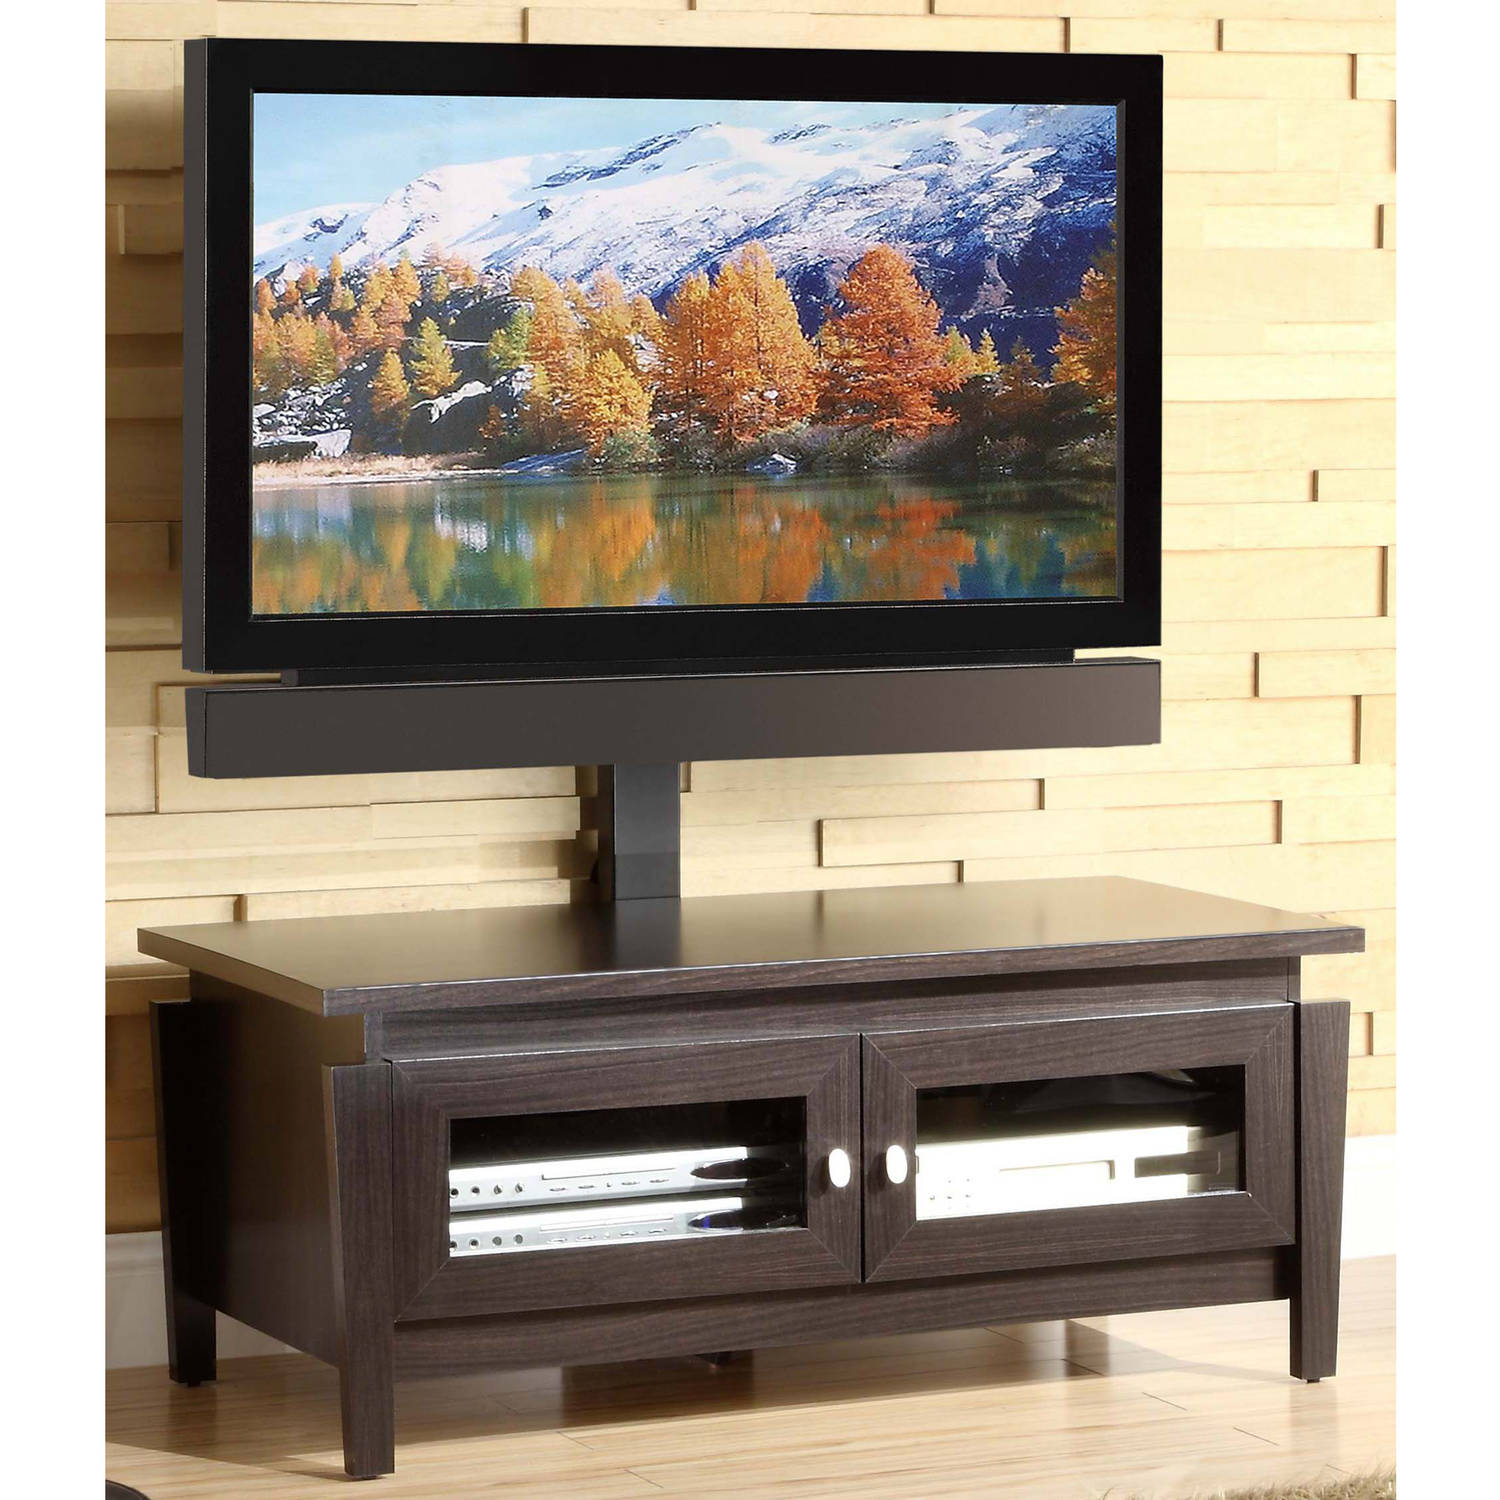 Table De Television Awesome Table De Television With Table De  # Table Tele Dimension